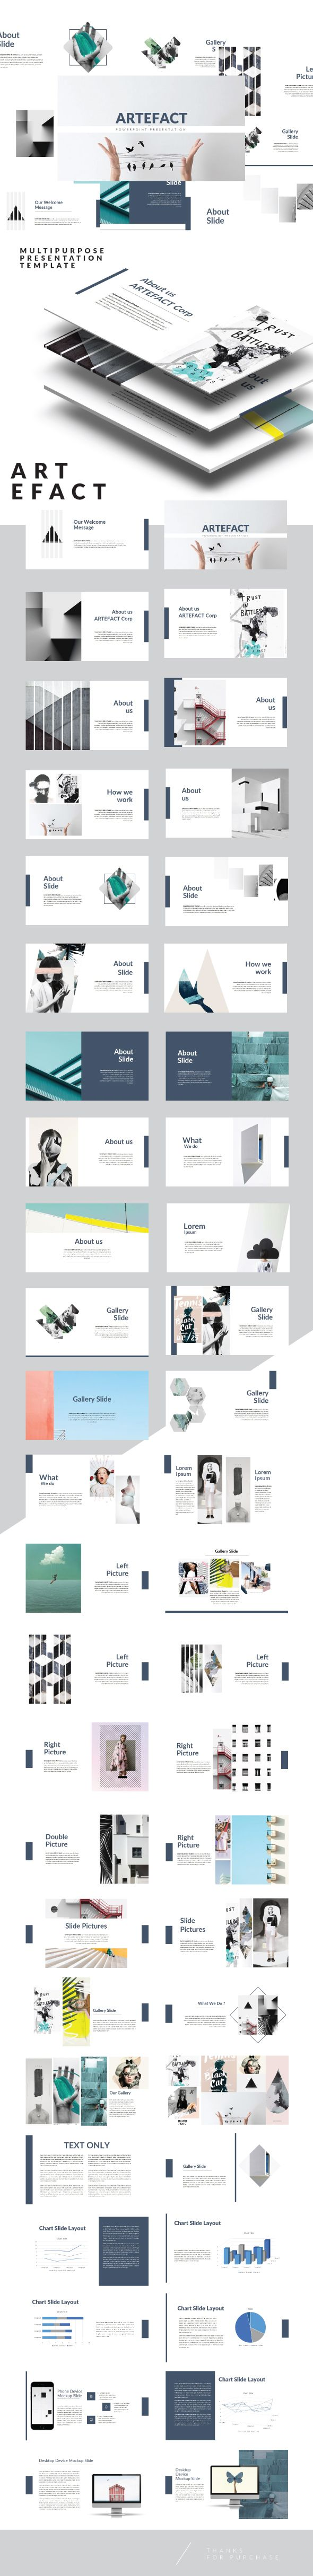 Artefact Multipurpose Powerpoint Template - Creative PowerPoint Templates